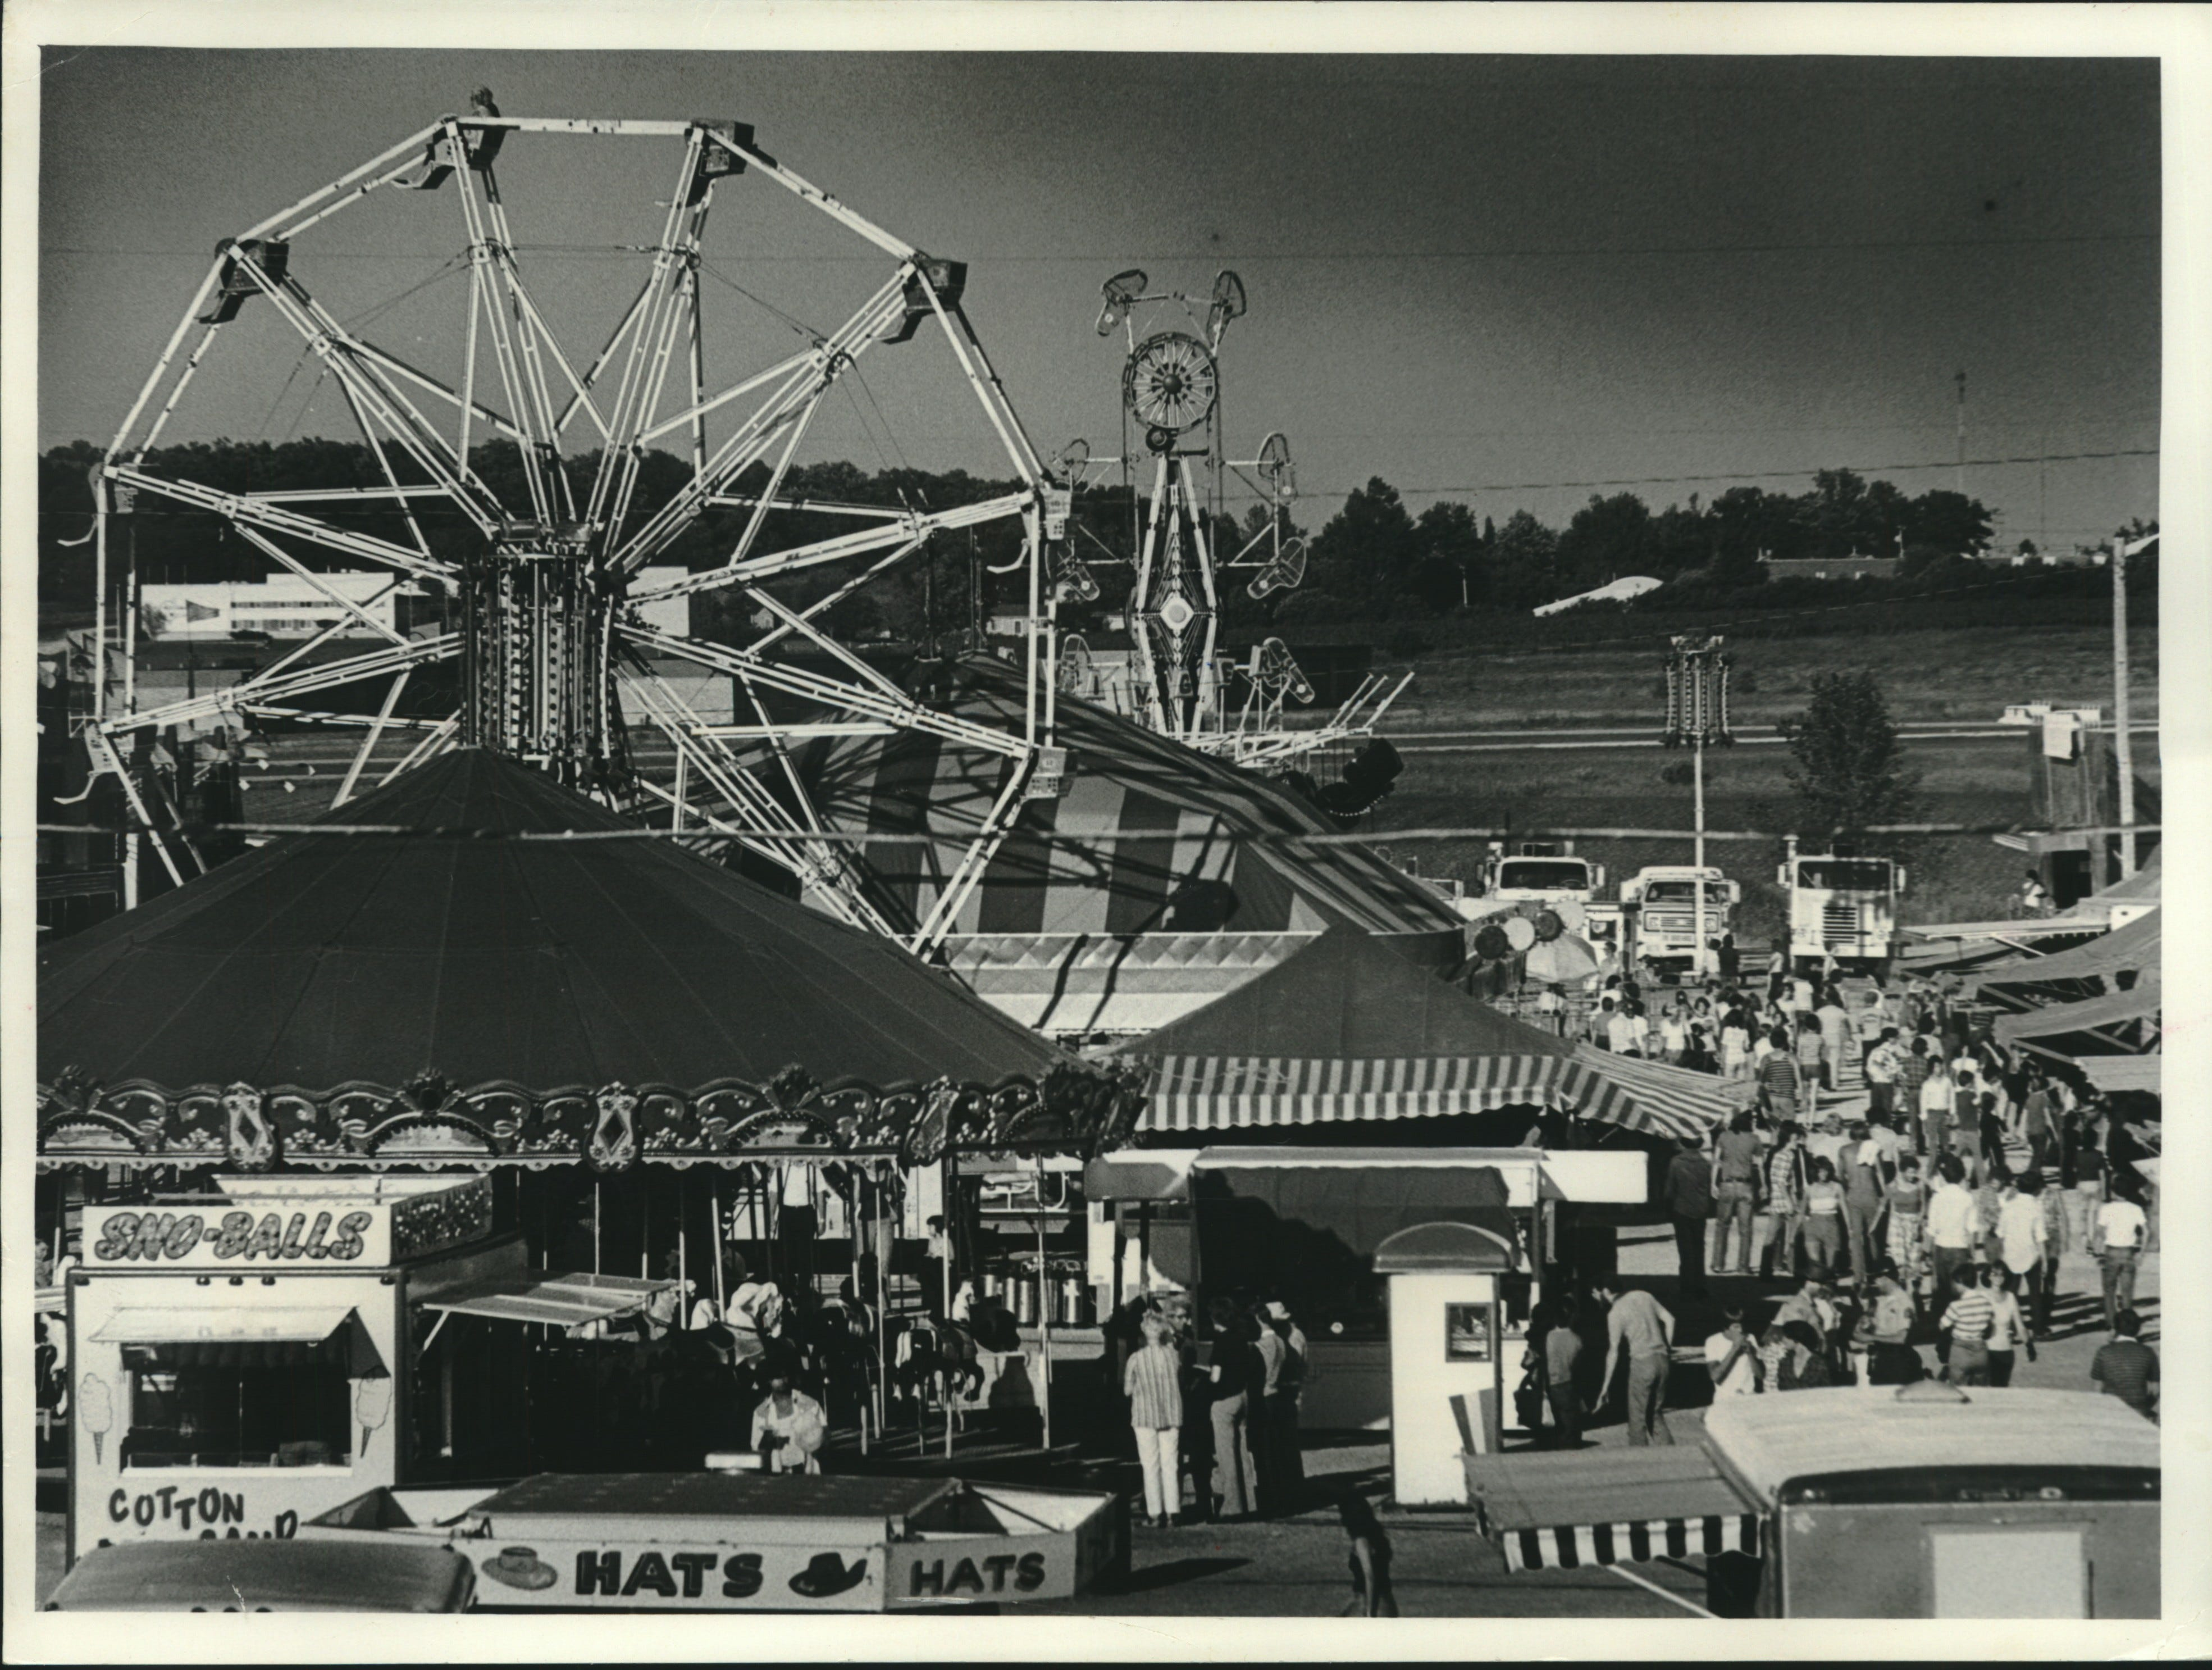 The midway attracted fairgoers at the Waukesha County Fair, which opened Wednesday.